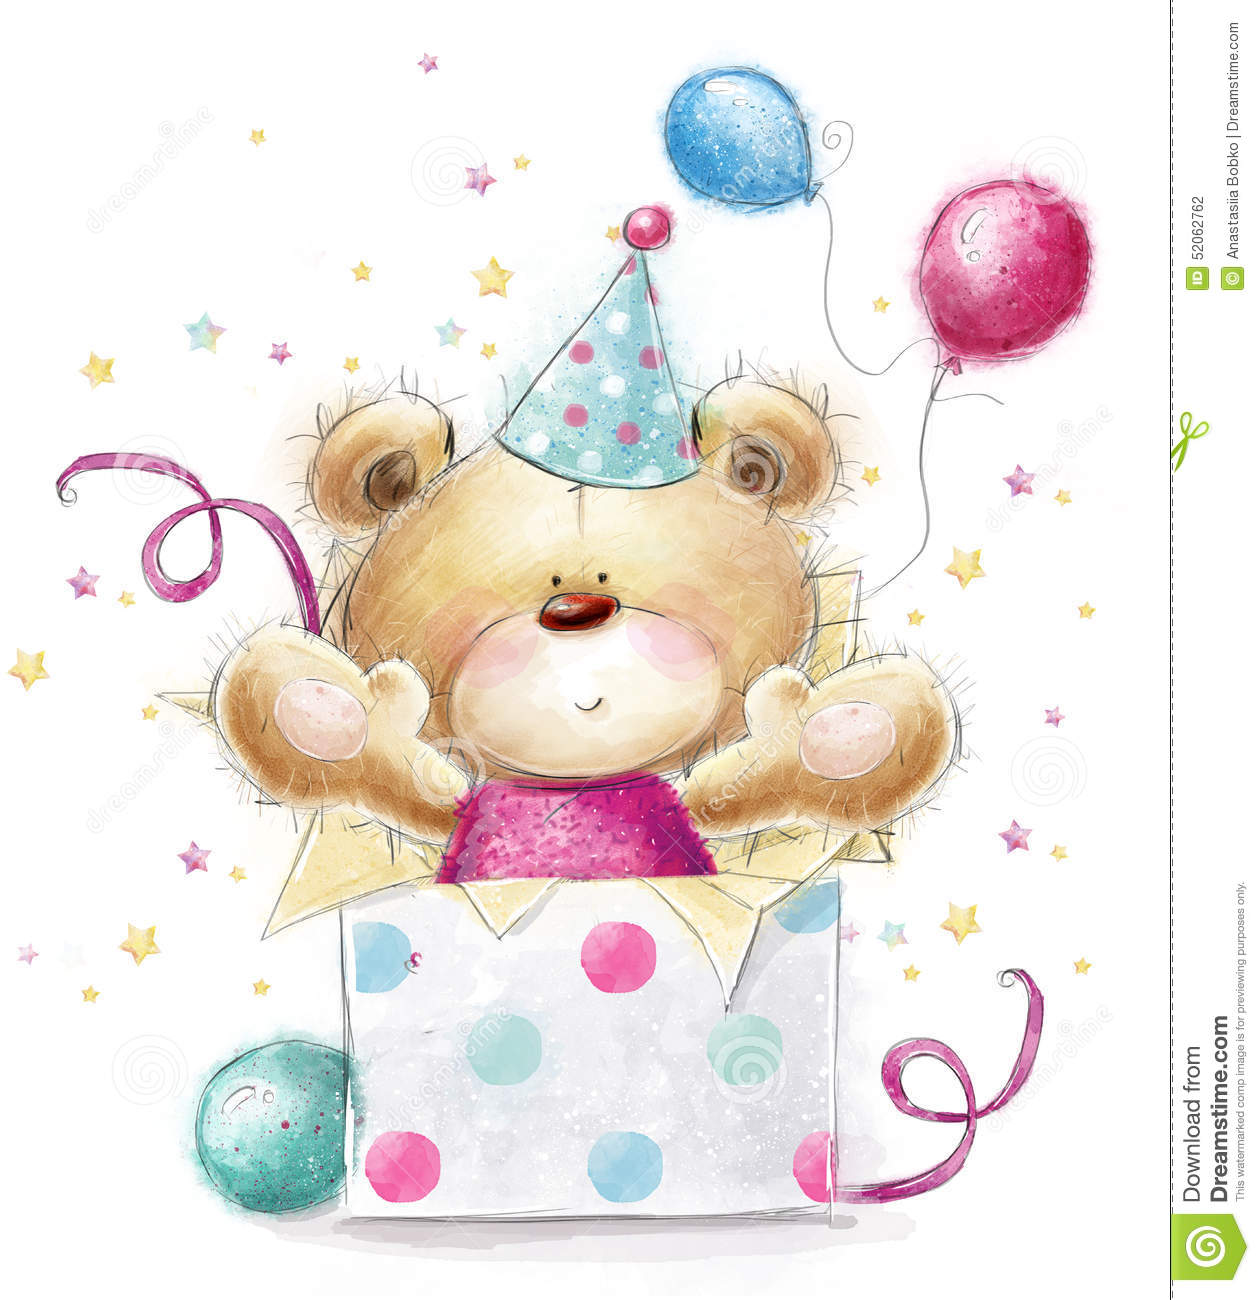 Carte Cadeau Wish Teddy Bear With The Gift Happy Birthday Card Stock